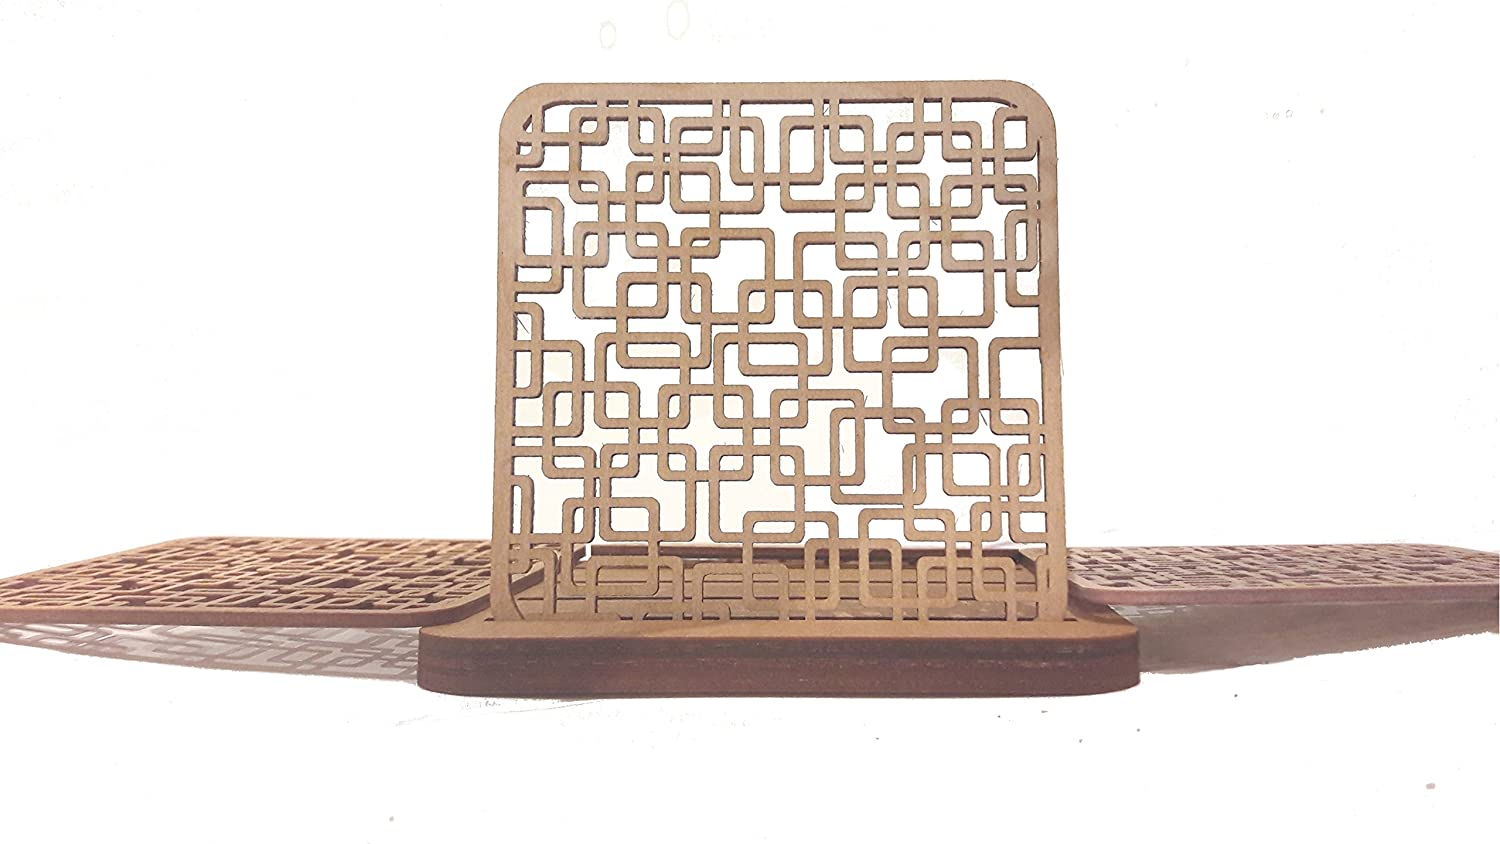 Decorative Wood Tabletop Coasters LithuWood Circles Table Protection Drink Coasters Hot Pads Plate Tray Tea Coffee Mug Tabletop Barware 4x4 inch 10x1